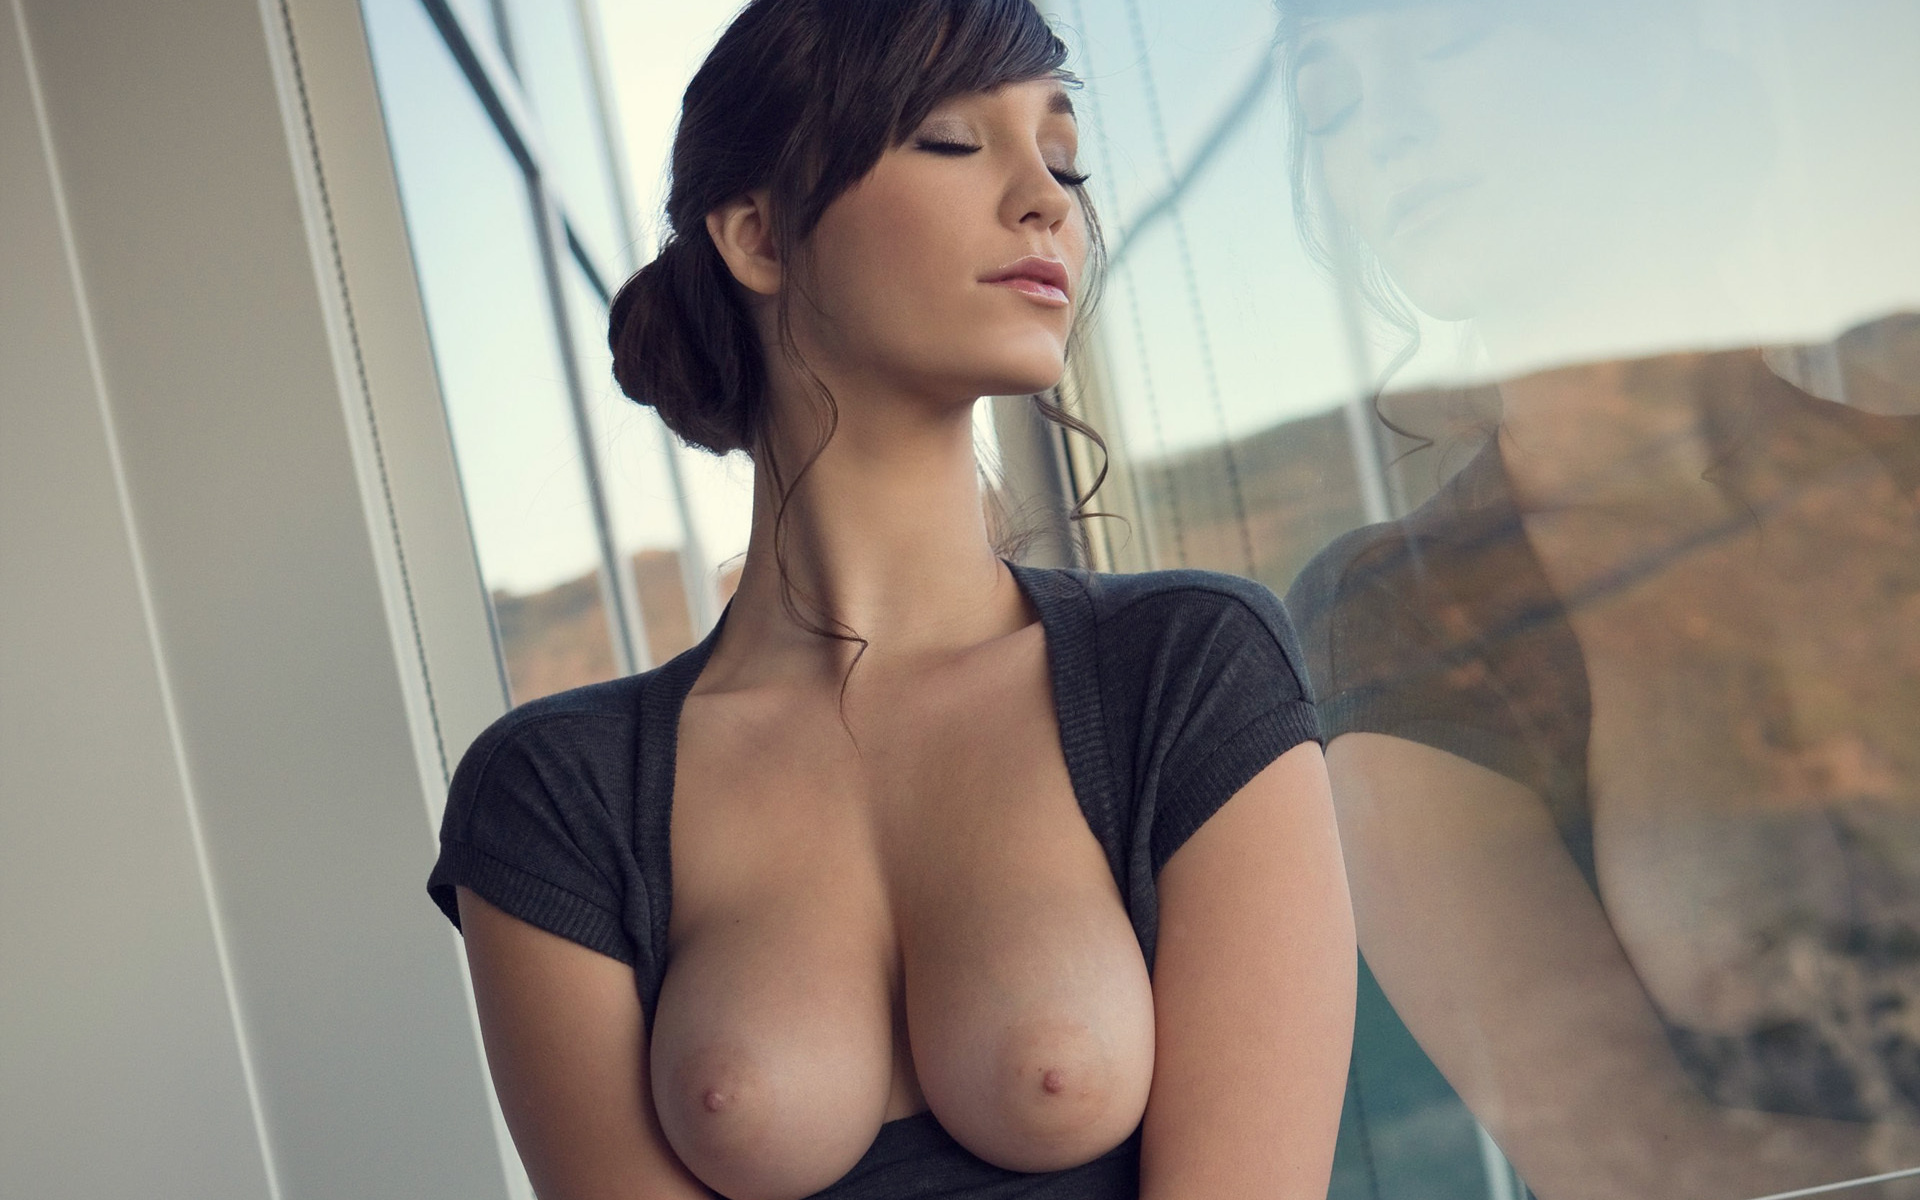 Window peep 10 brunette big tits Part 6 10